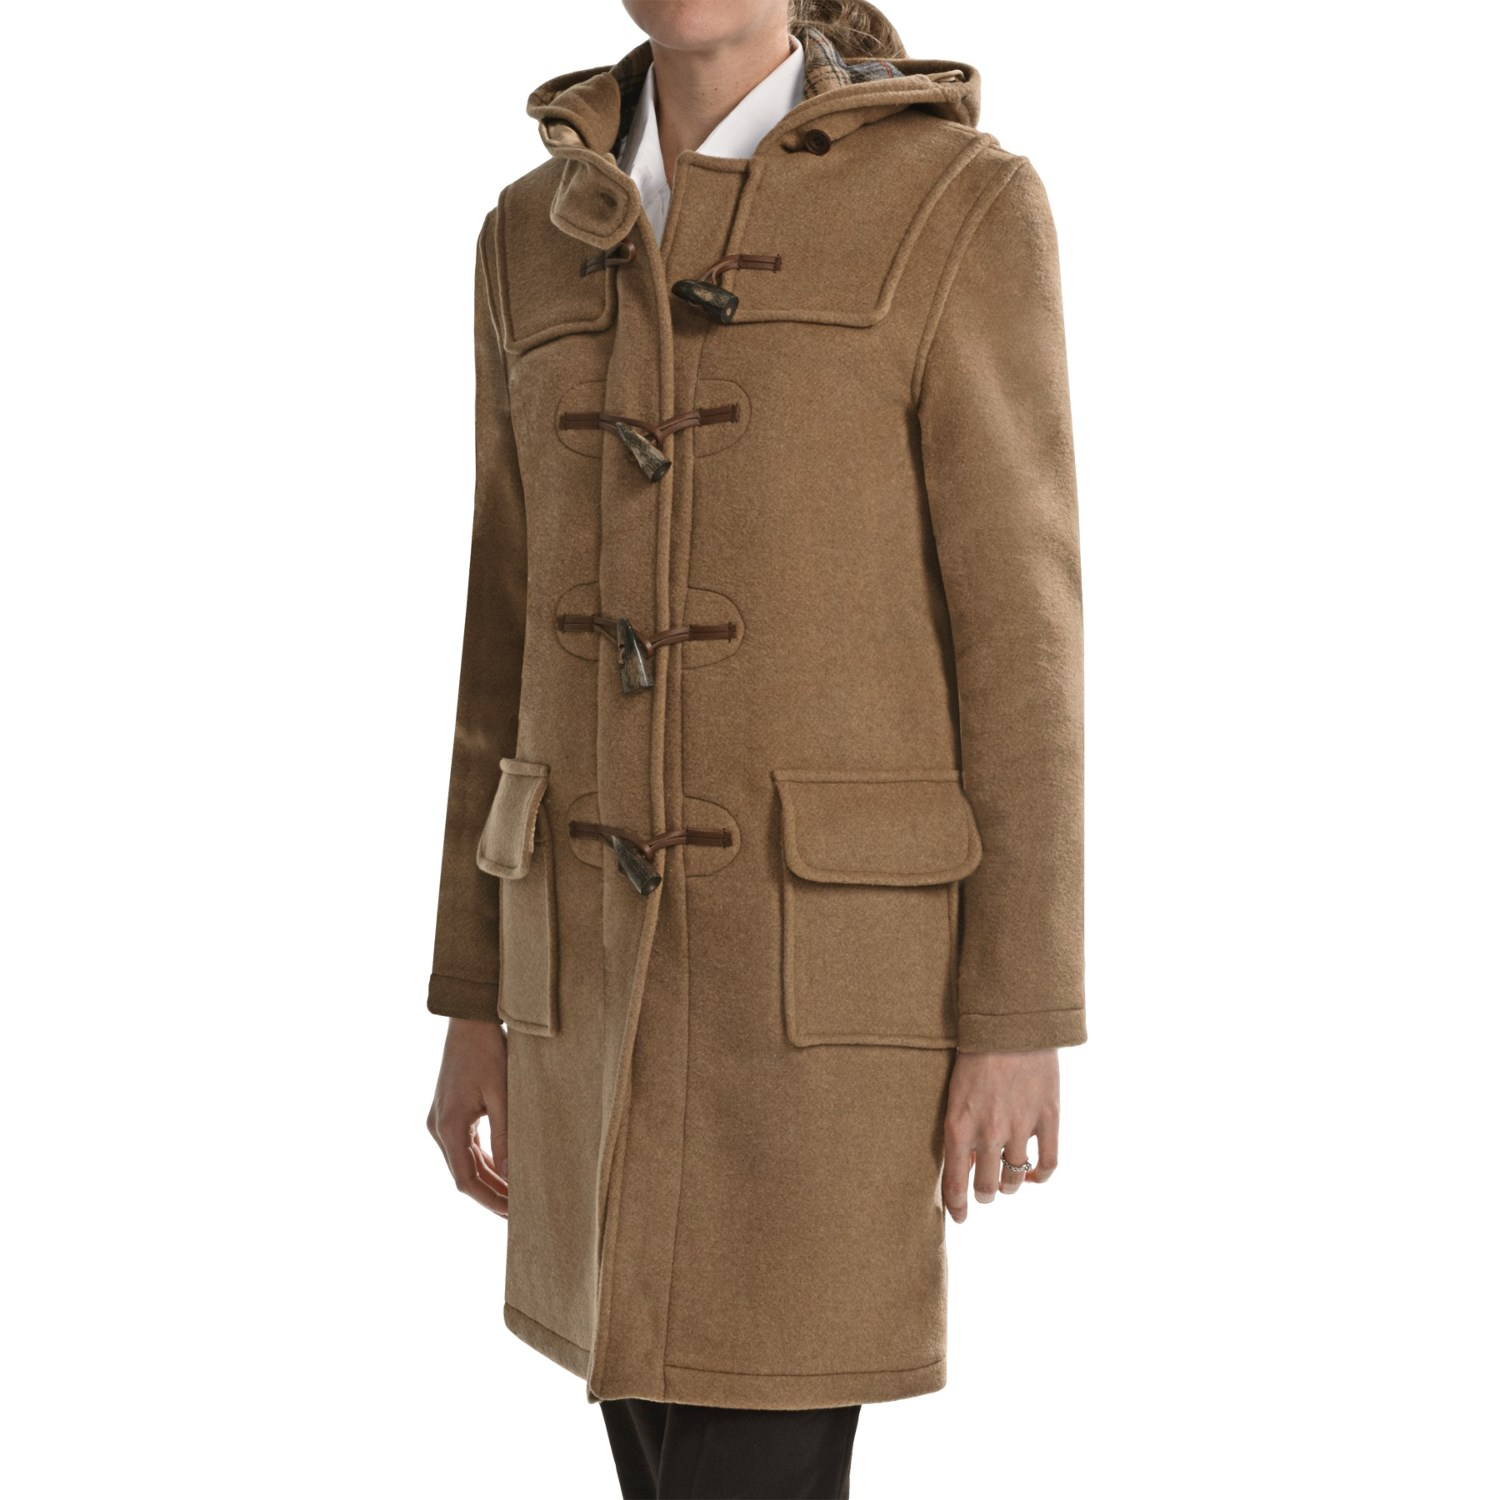 montgomery by john partridge classic duffle coat for tall. Black Bedroom Furniture Sets. Home Design Ideas